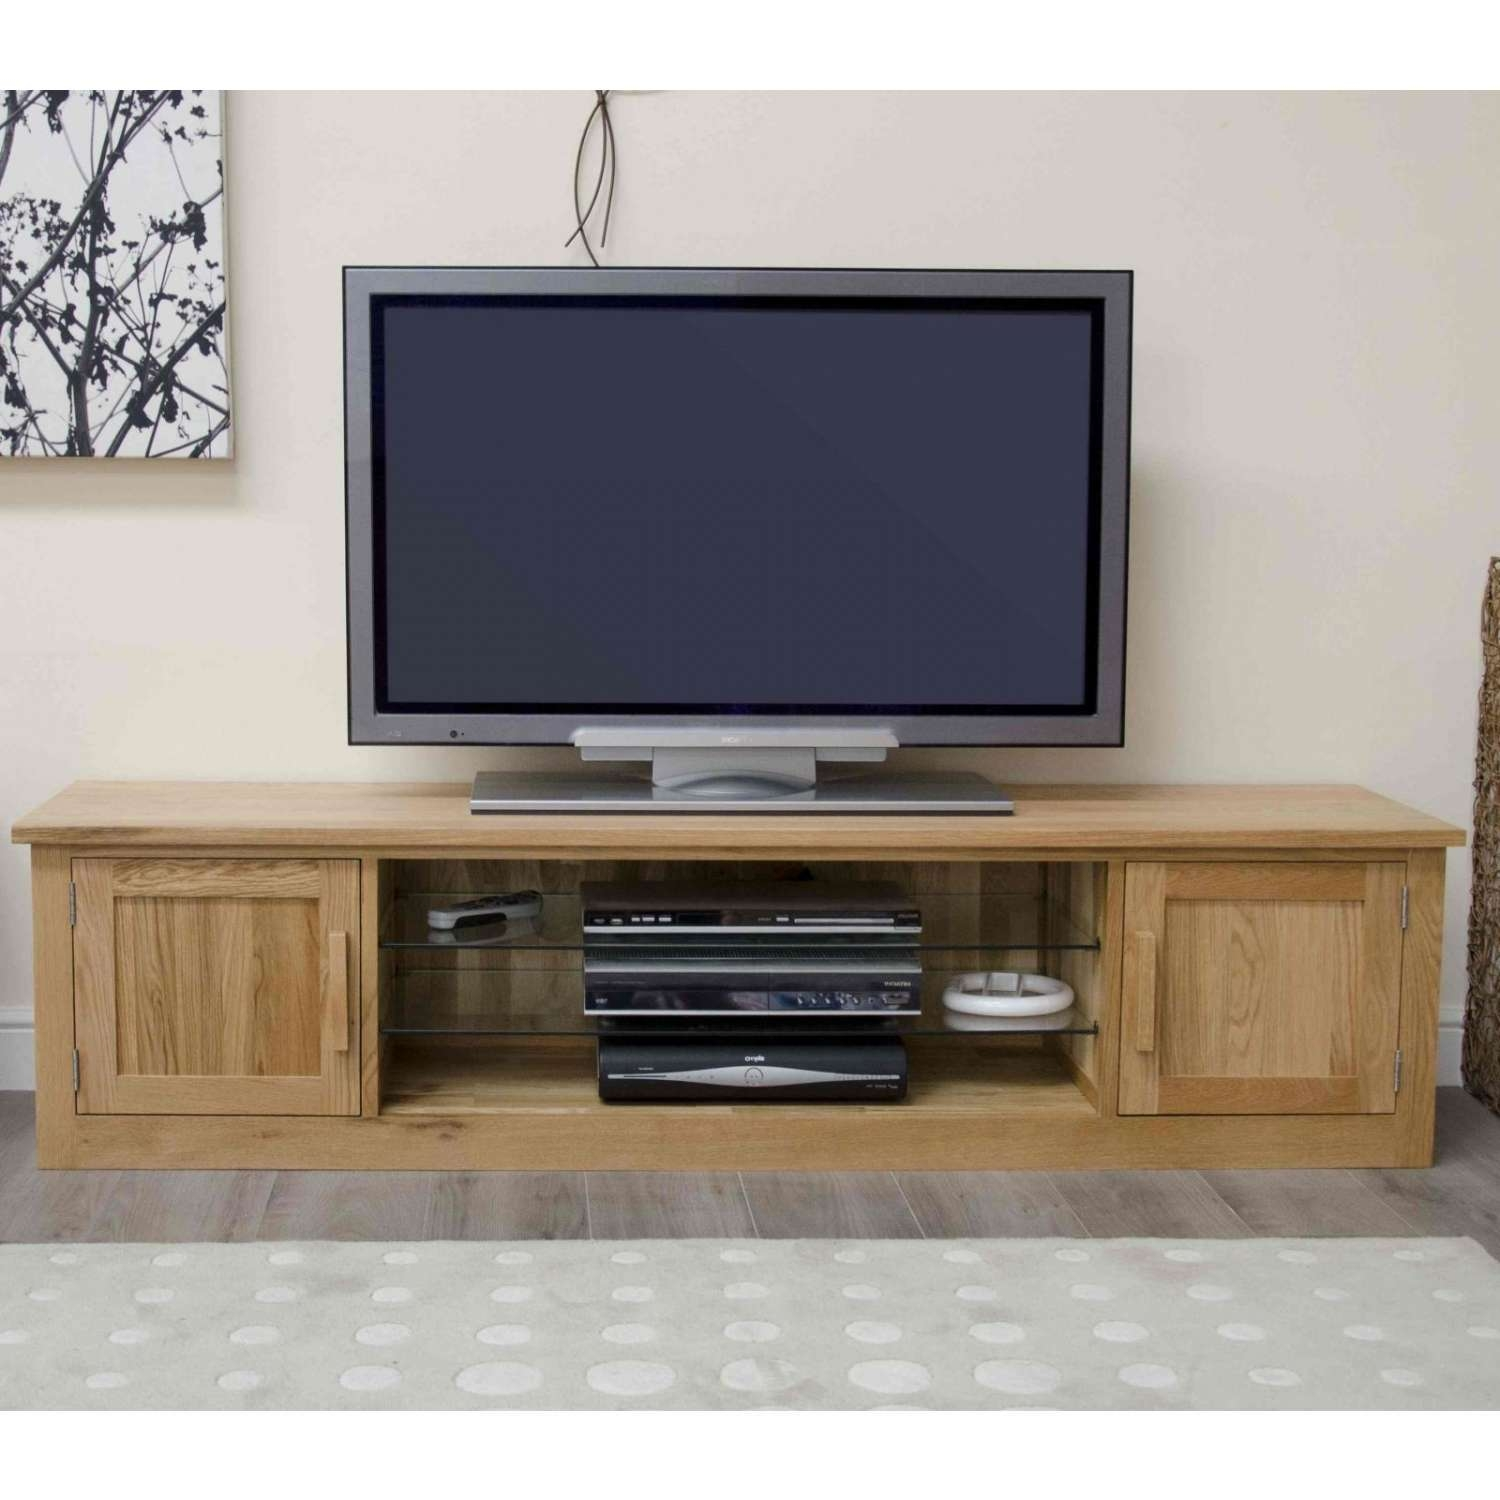 Arden Solid Oak Living Room Furniture Large Widescreen Tv Cabinet Pertaining To Large Oak Tv Stands (View 4 of 15)